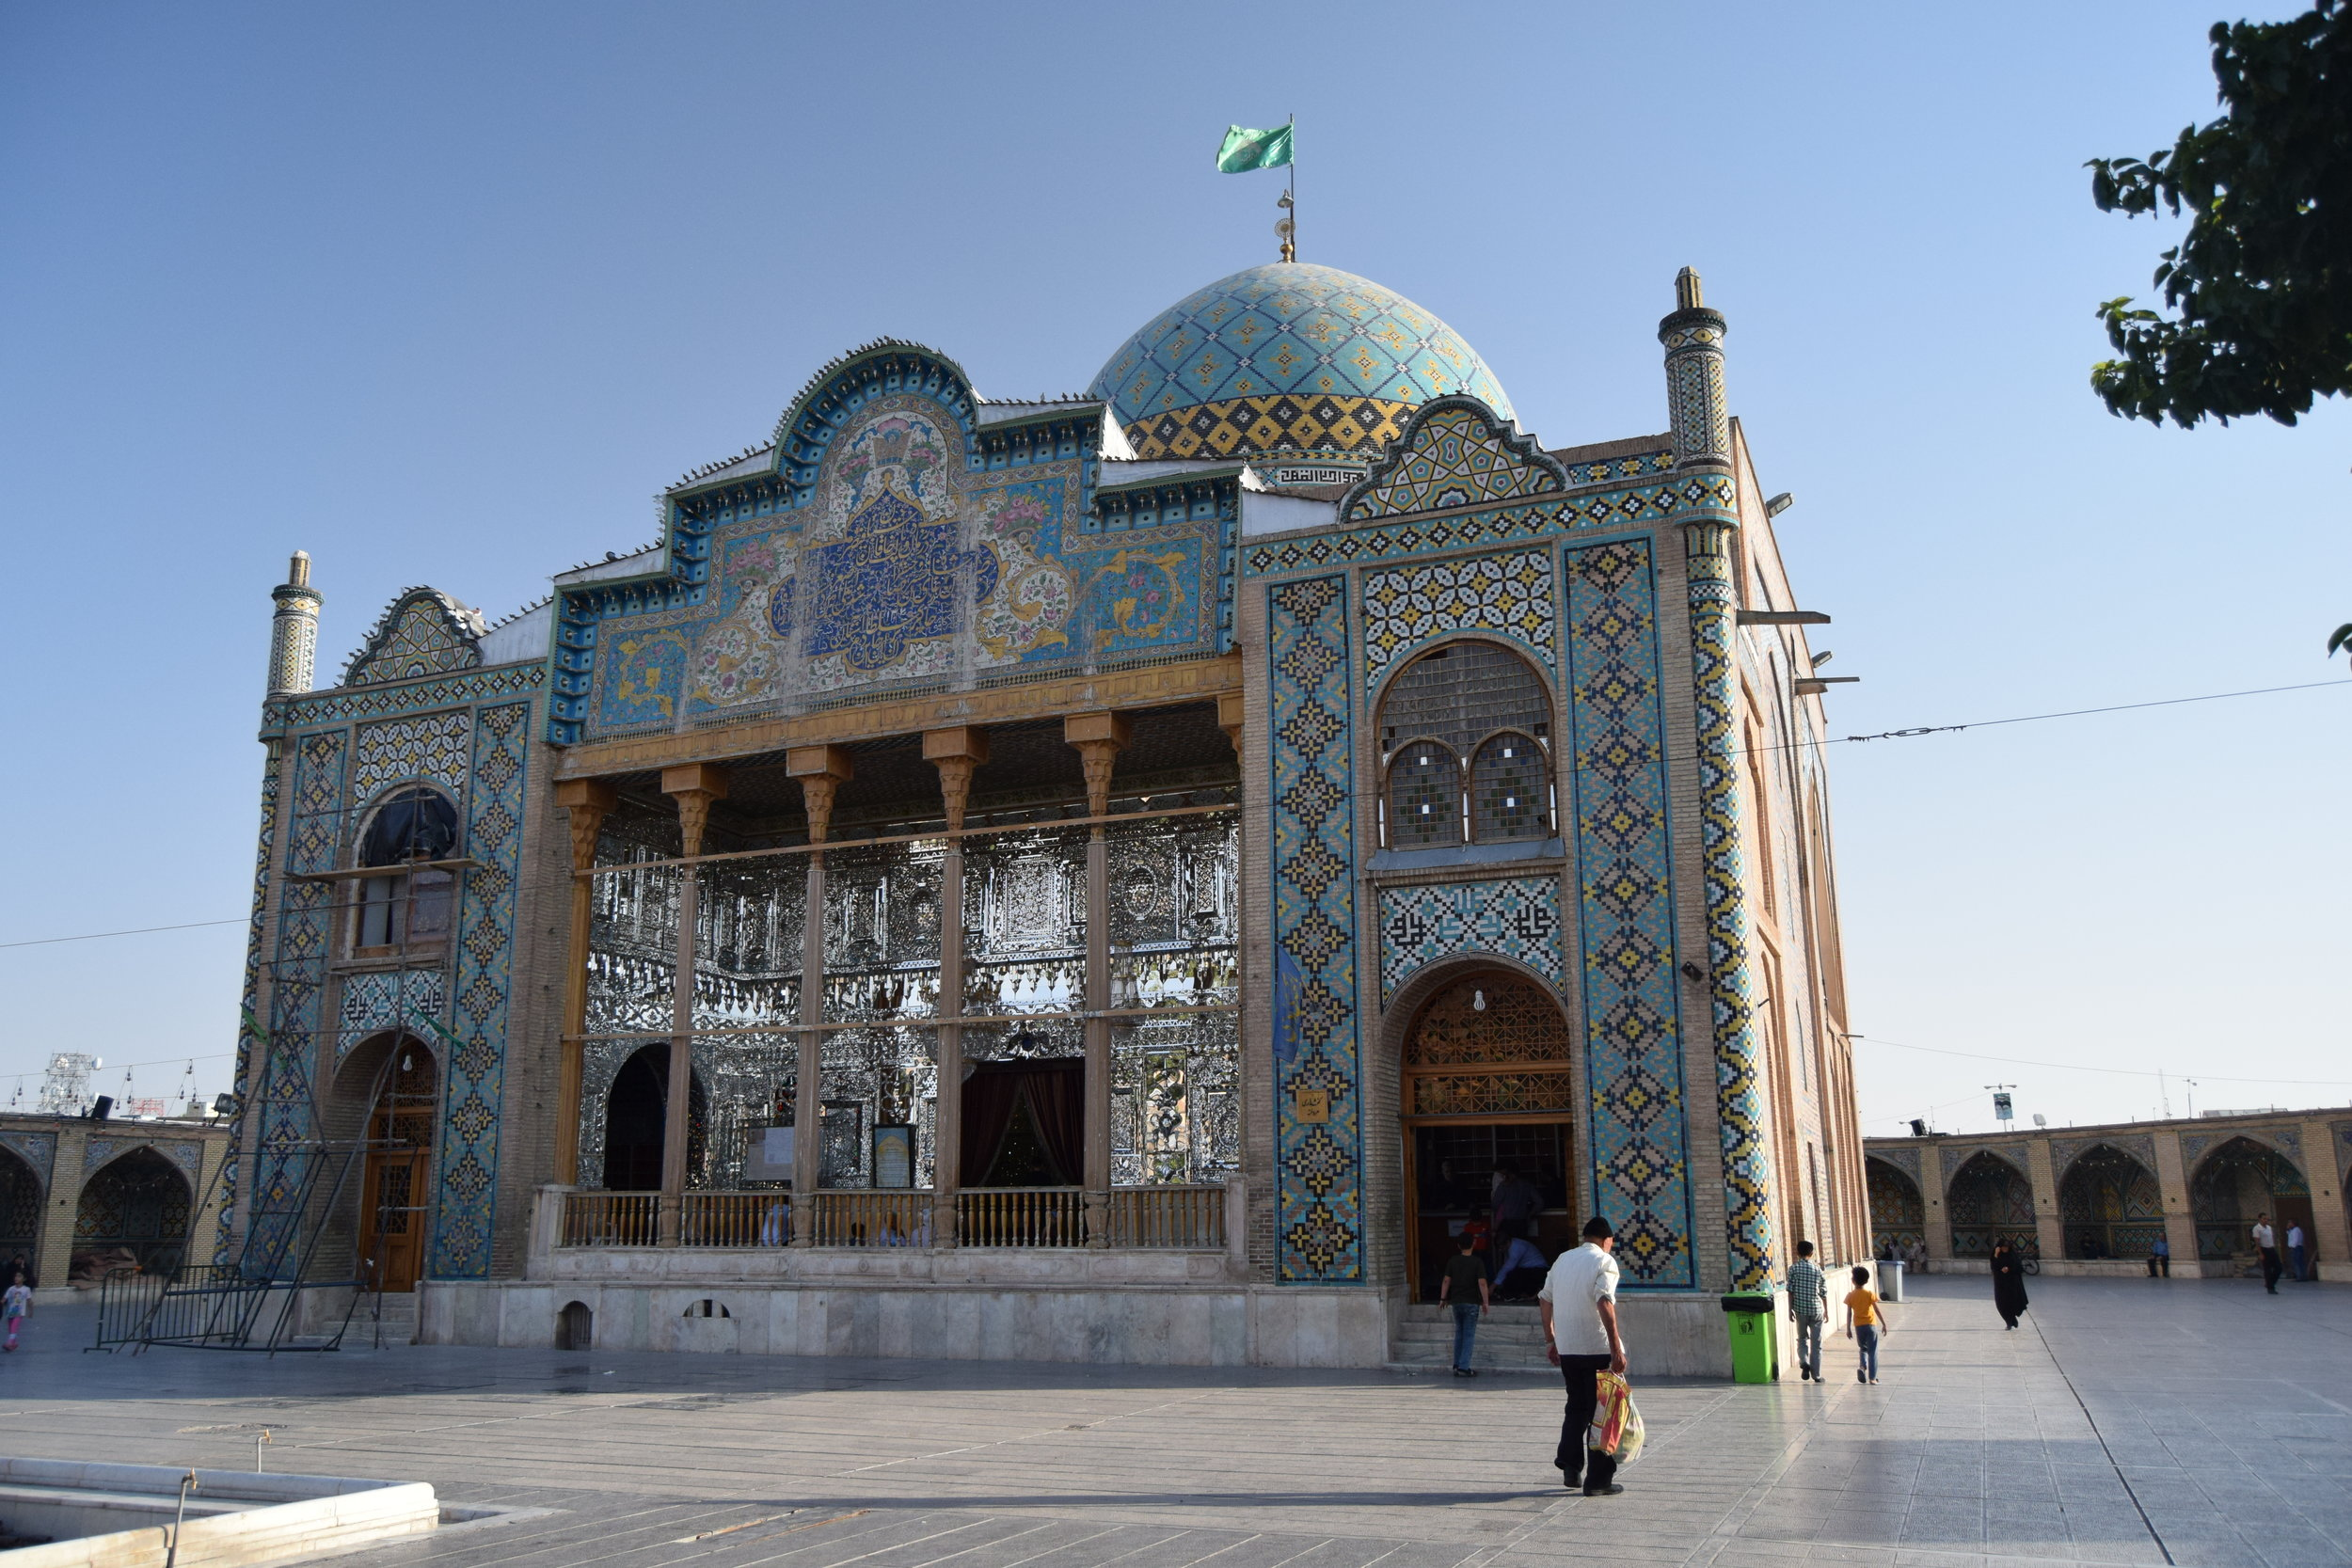 Shrine in Qazvin - the interior covered in mirrors